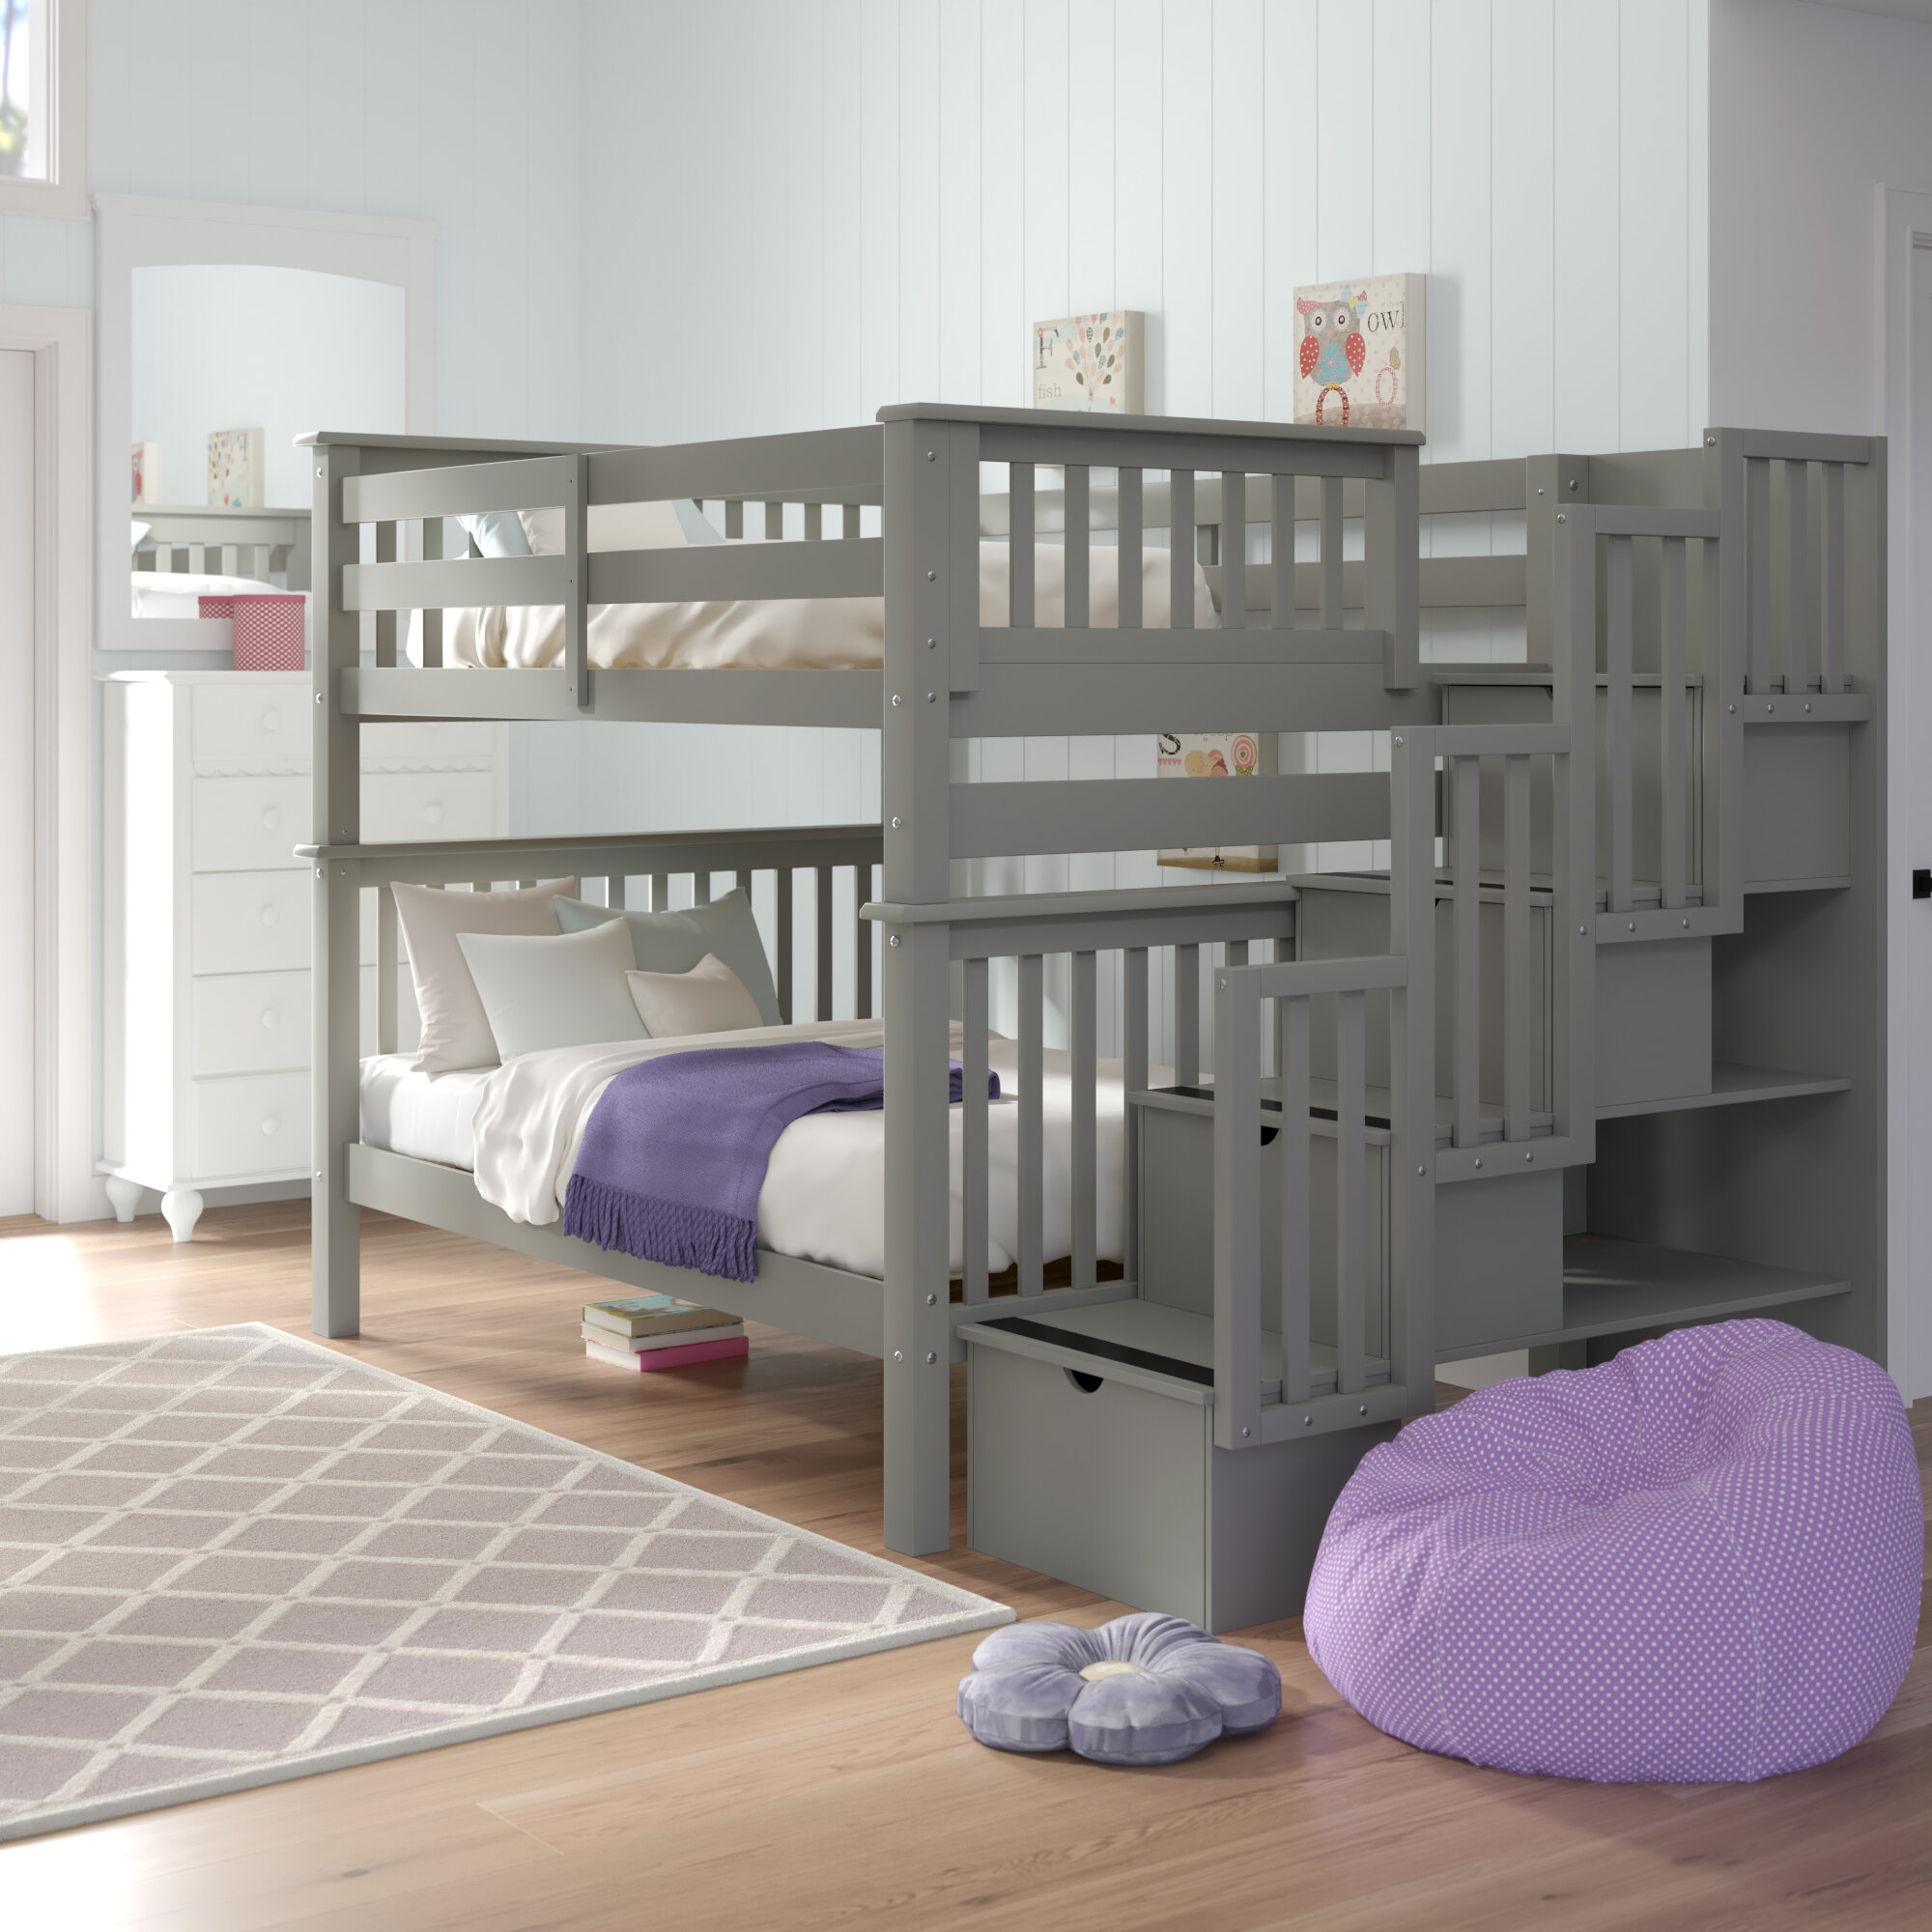 Harriet Bee Tena Full Over Full Bunk Bed With Shelves And 4 Drawers Reviews Wayfair